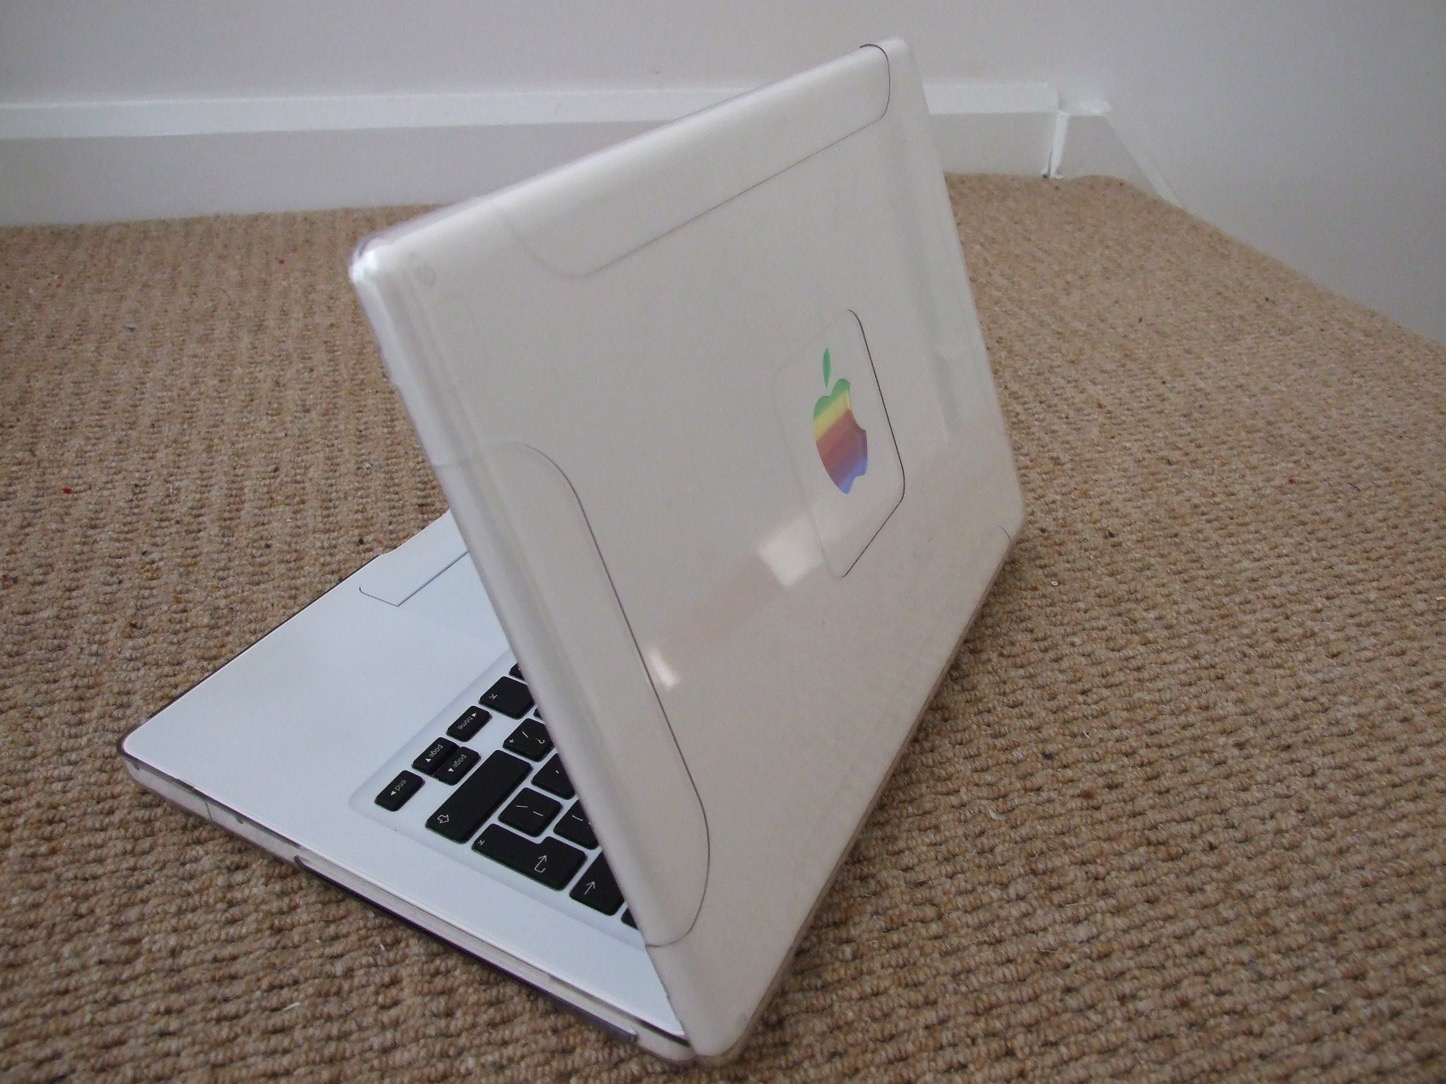 macbook-white.jpg